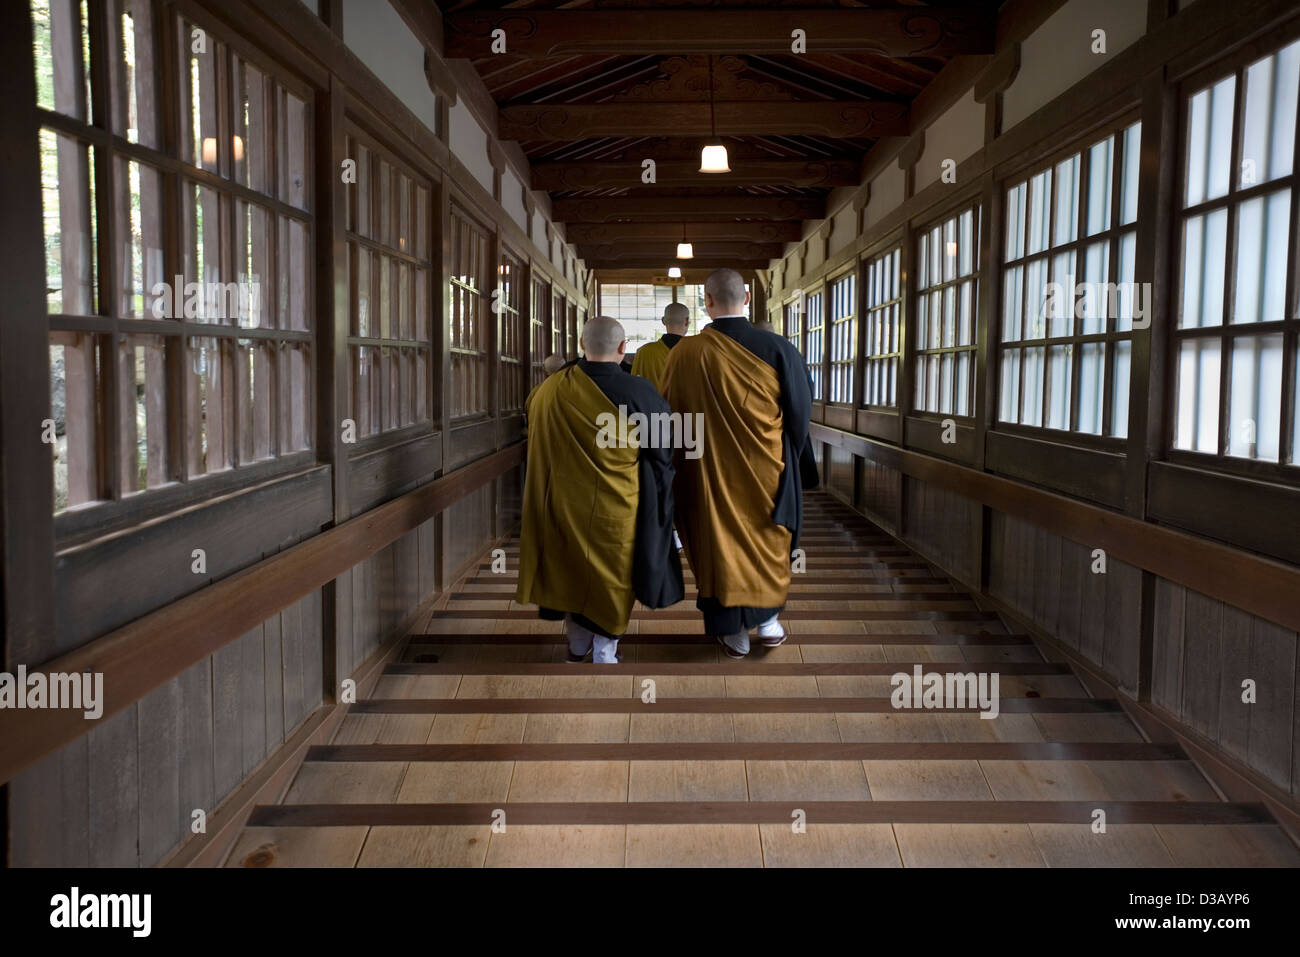 Bald-headed Buddhist monks wearing robes walking through covered stairway at Soto sect Eiheiji Temple in Fukui, - Stock Image